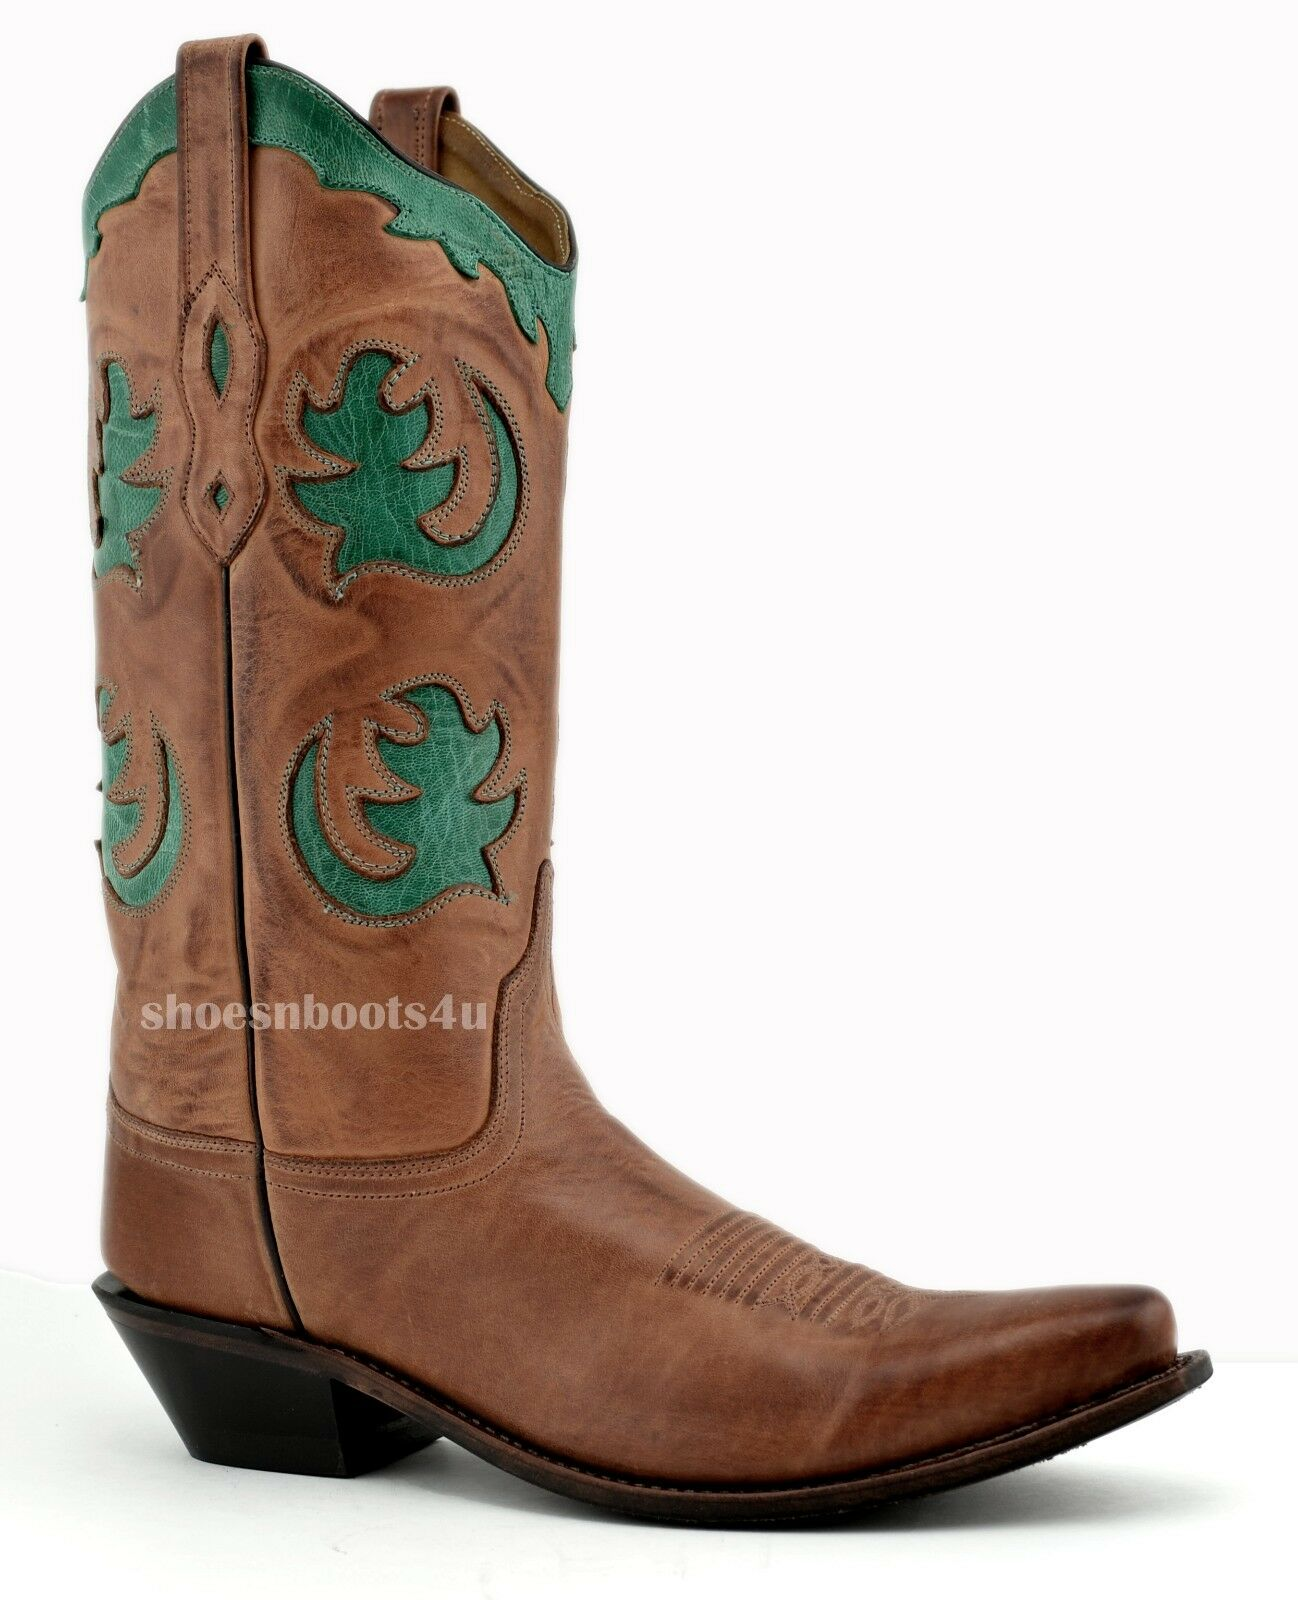 WOMENS 9.5 9 1 2 M OLD WEST BARNWOOD TURQUOISE INLAYS COWBOY BOOTS LF1523